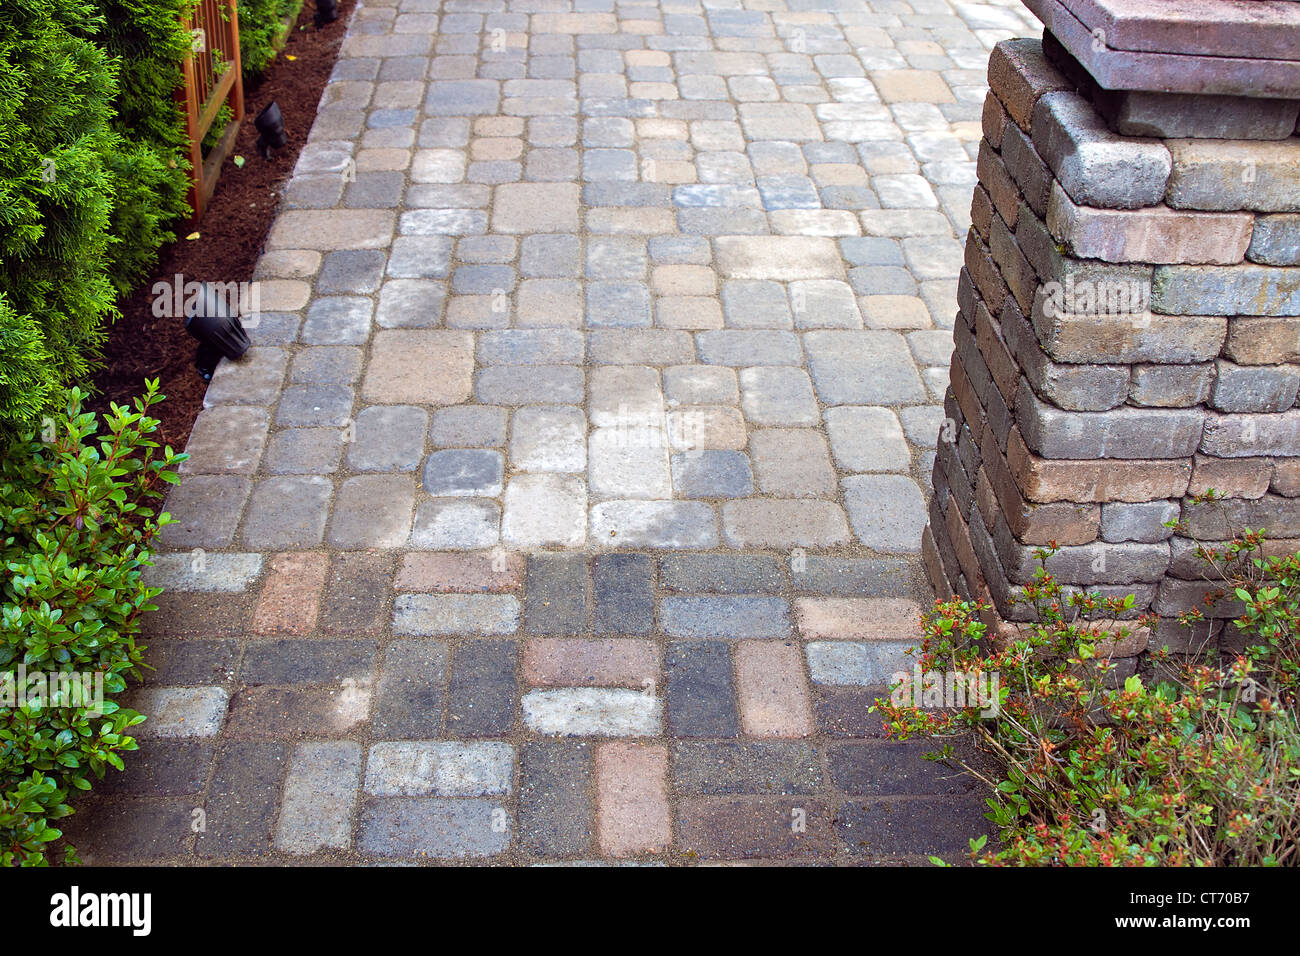 Backyard Garden Landscaping Hardscape With Cement Pavers Patio   Stock Image